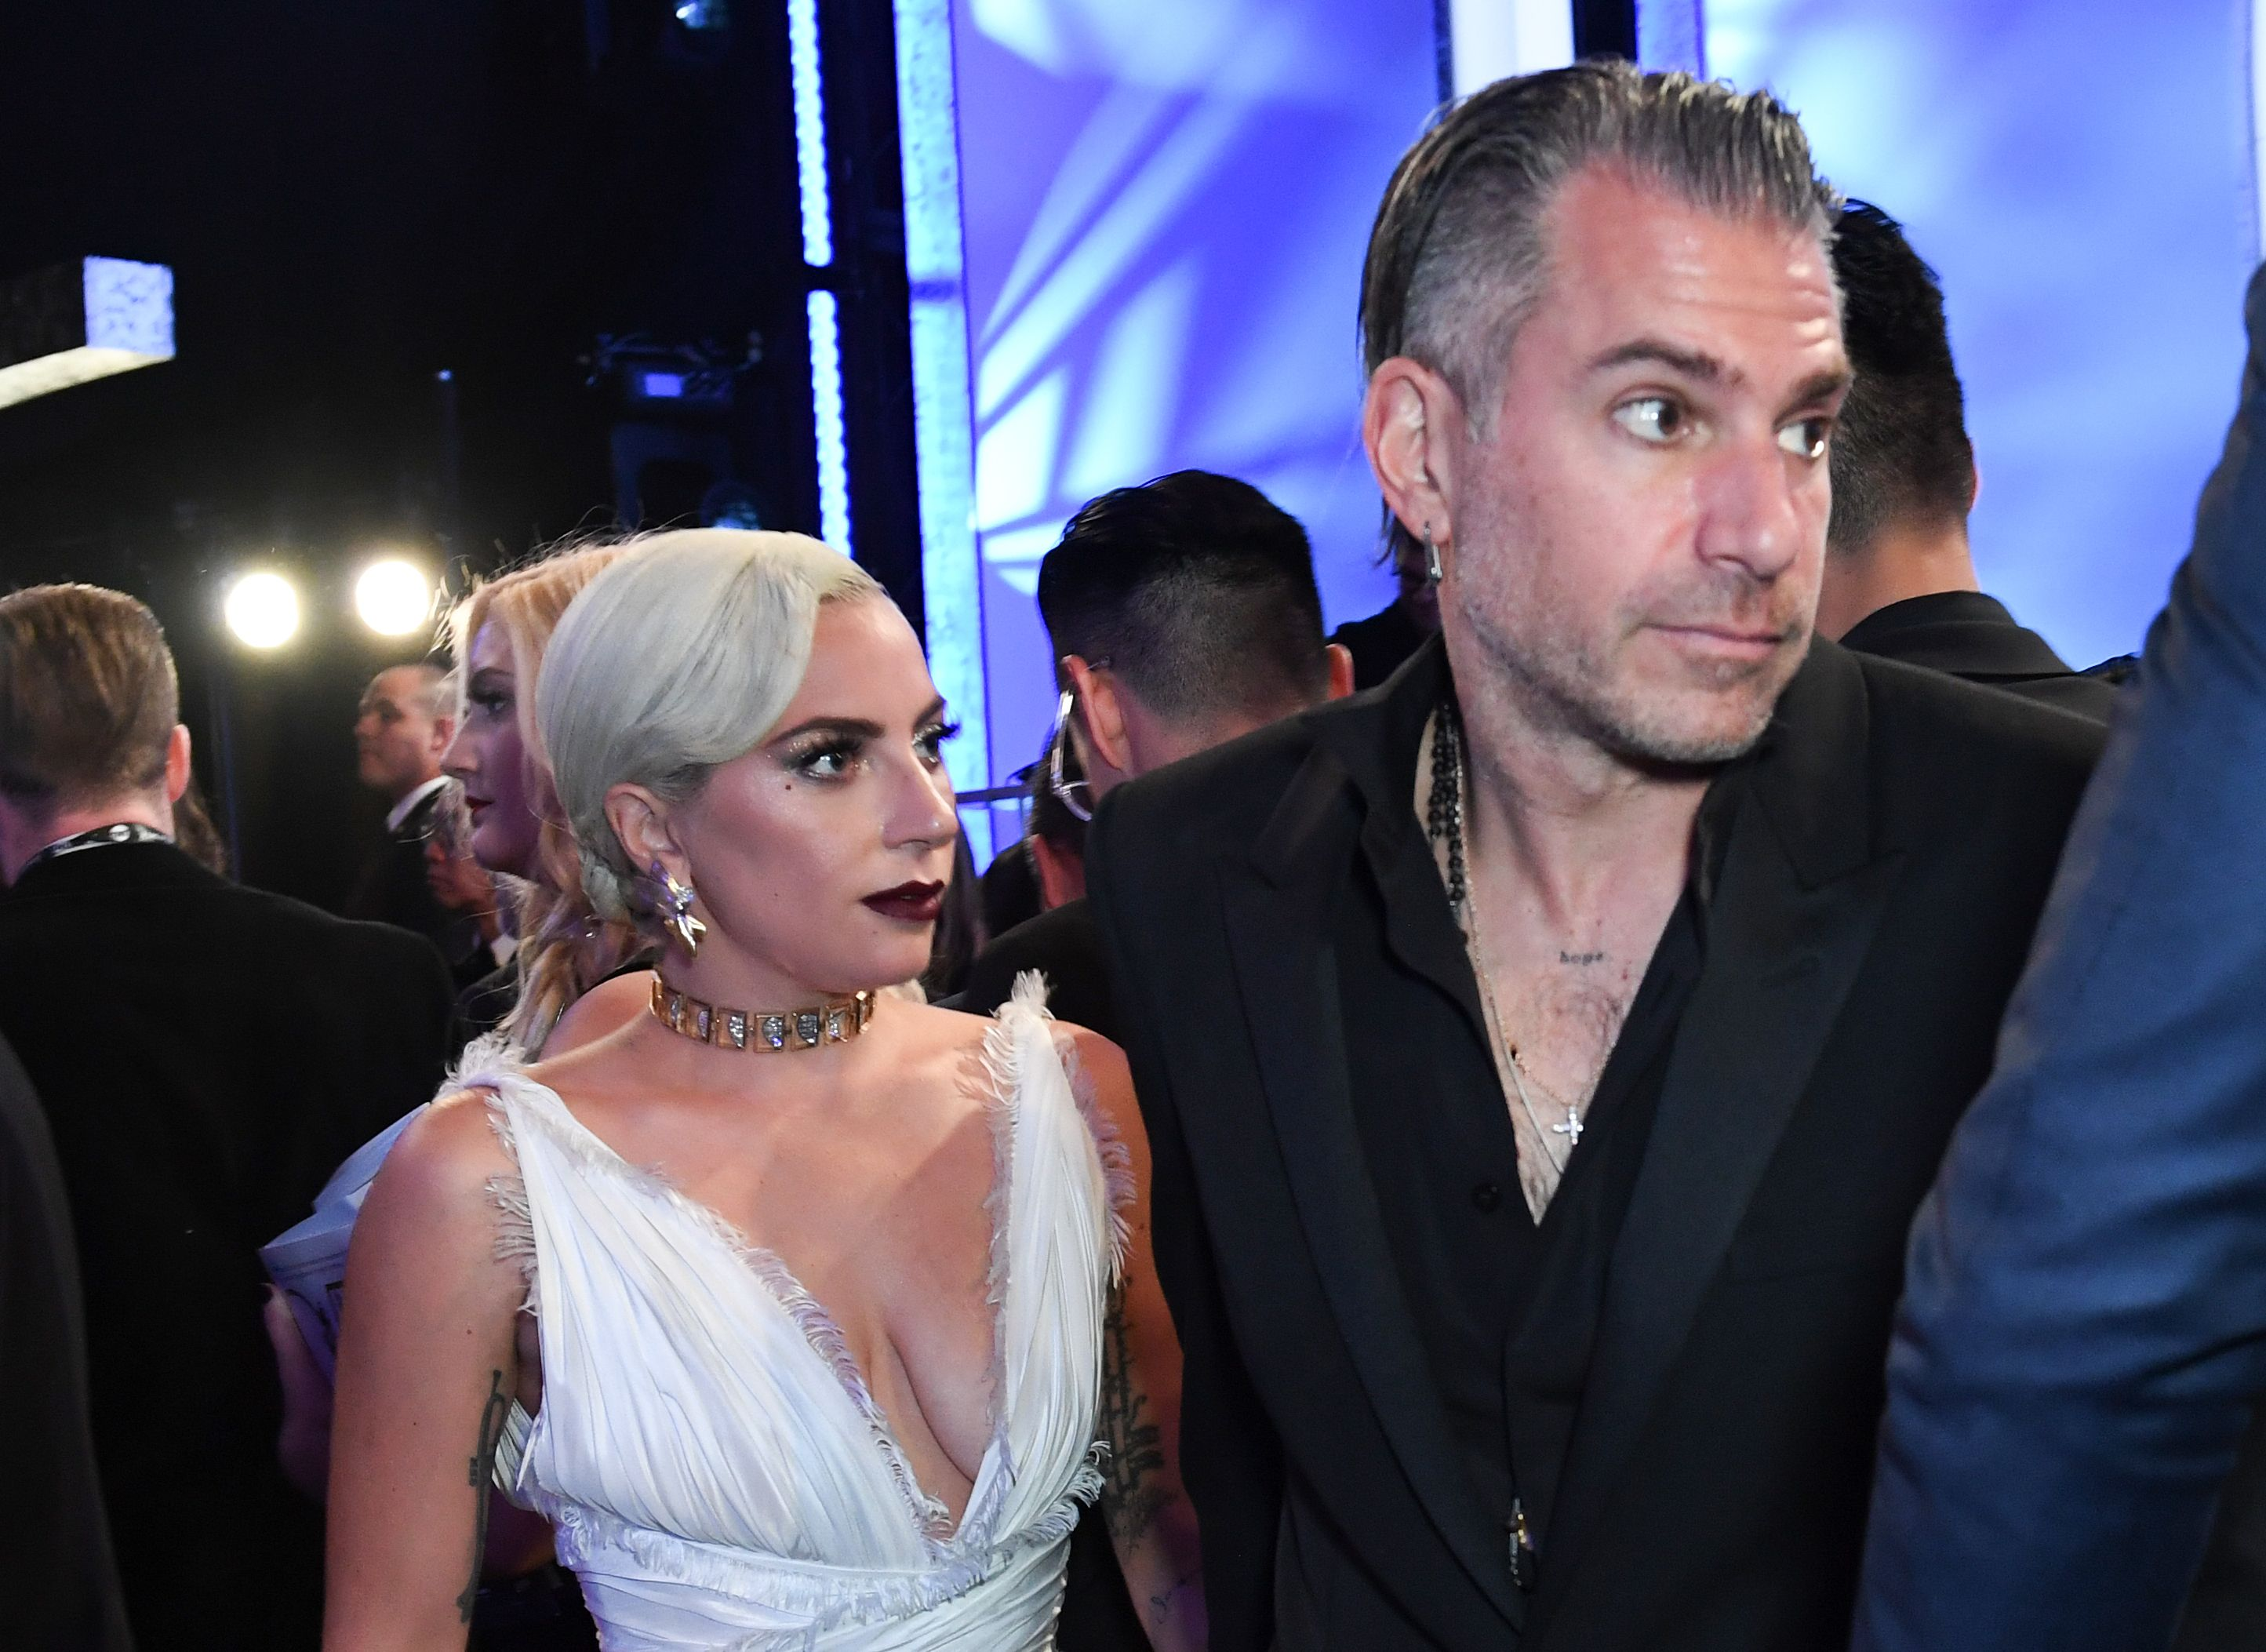 Actress Lady Gaga (L) and fiance Christian Carino attend the 25th Annual Screen Actors Guild Awards show at the Shrine Auditorium in Los Angeles on January 27, 2019. (Photo by VALERIE MACON / AFP) (Photo credit should read VALERIE MACON/AFP/Getty Images)